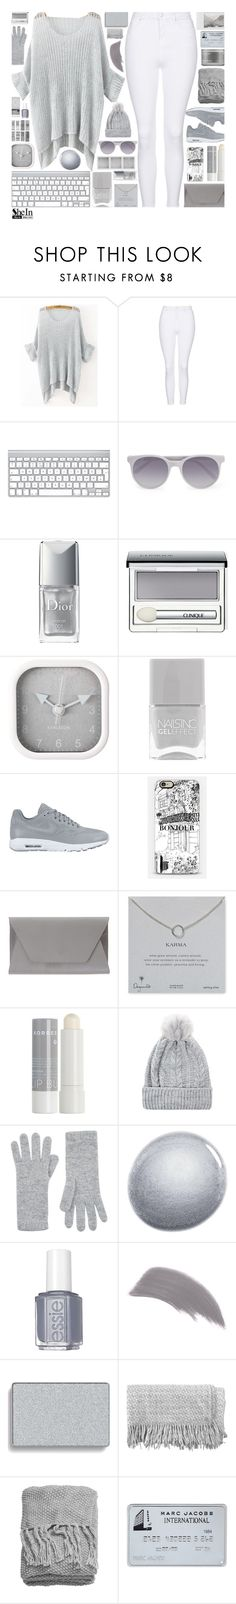 """""""SheInside Grey Loose Sweater"""" by xgracieeee ❤ liked on Polyvore featuring Topshop, Holga, Prism, Christian Dior, Clinique, Karlsson, Nails Inc., NIKE, Noee and Dogeared"""